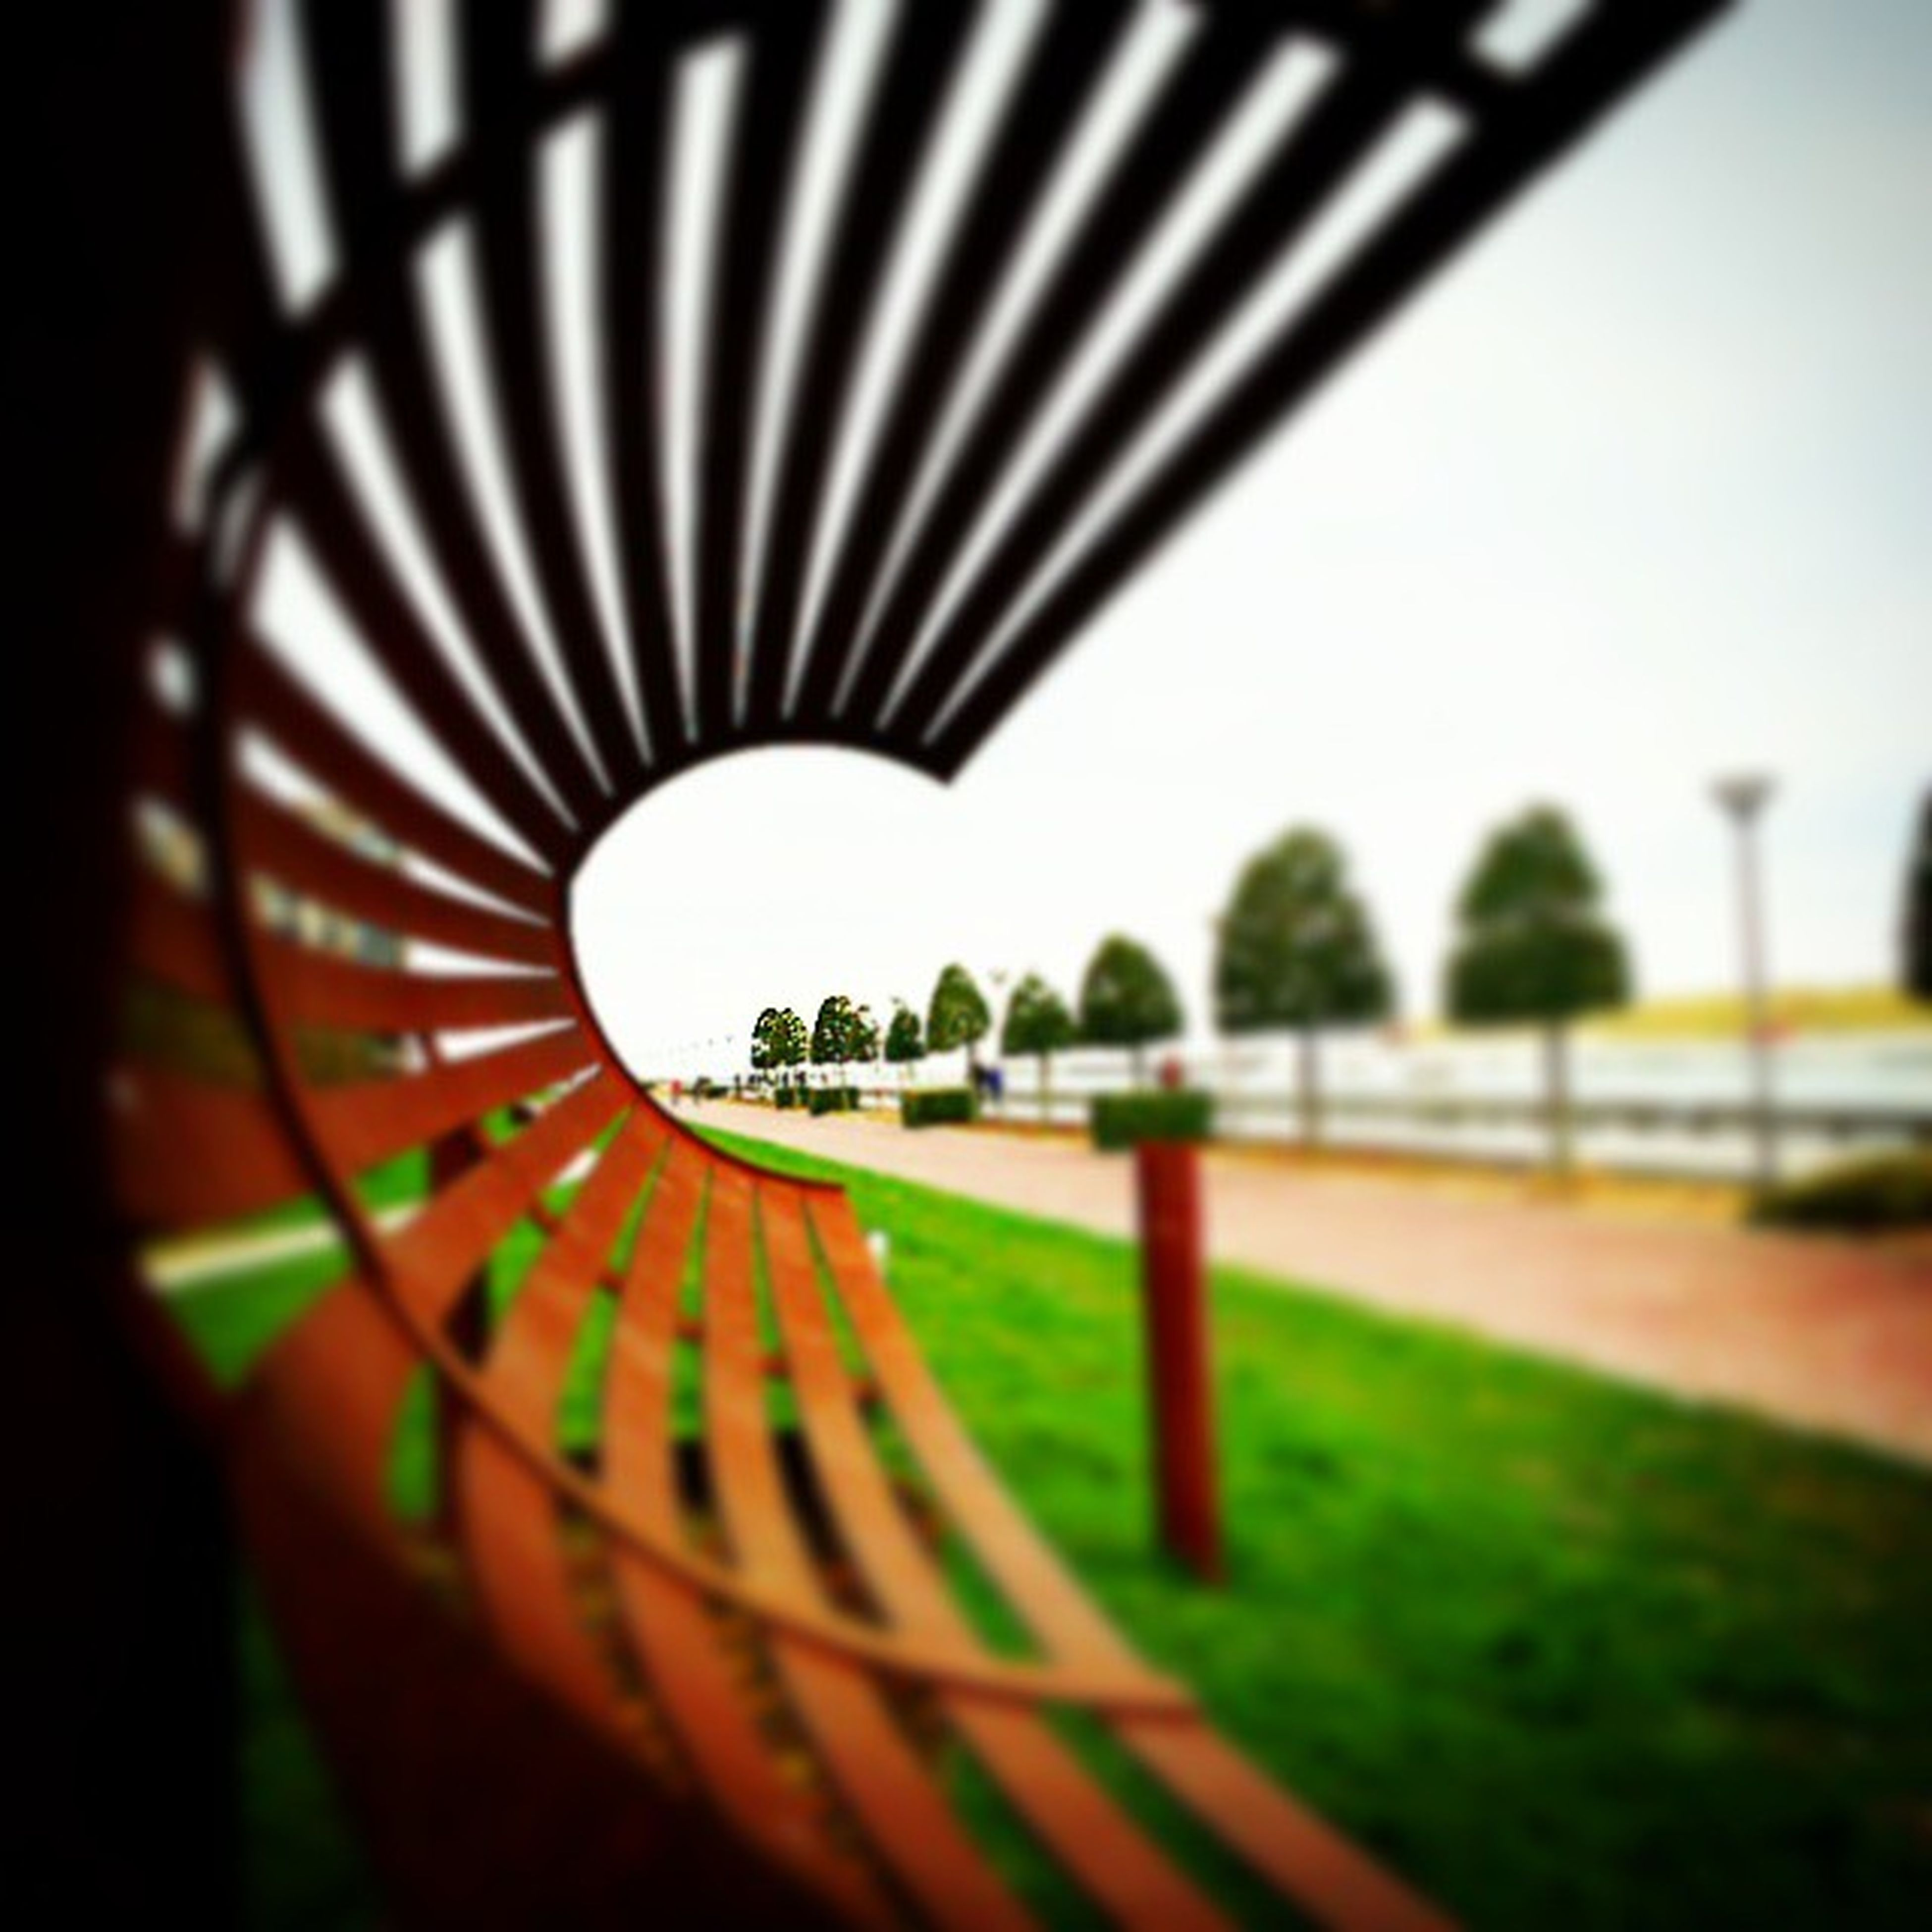 tree, railing, fence, clear sky, park - man made space, grass, metal, no people, day, sunlight, selective focus, shadow, nature, growth, outdoors, pattern, close-up, built structure, focus on foreground, sky